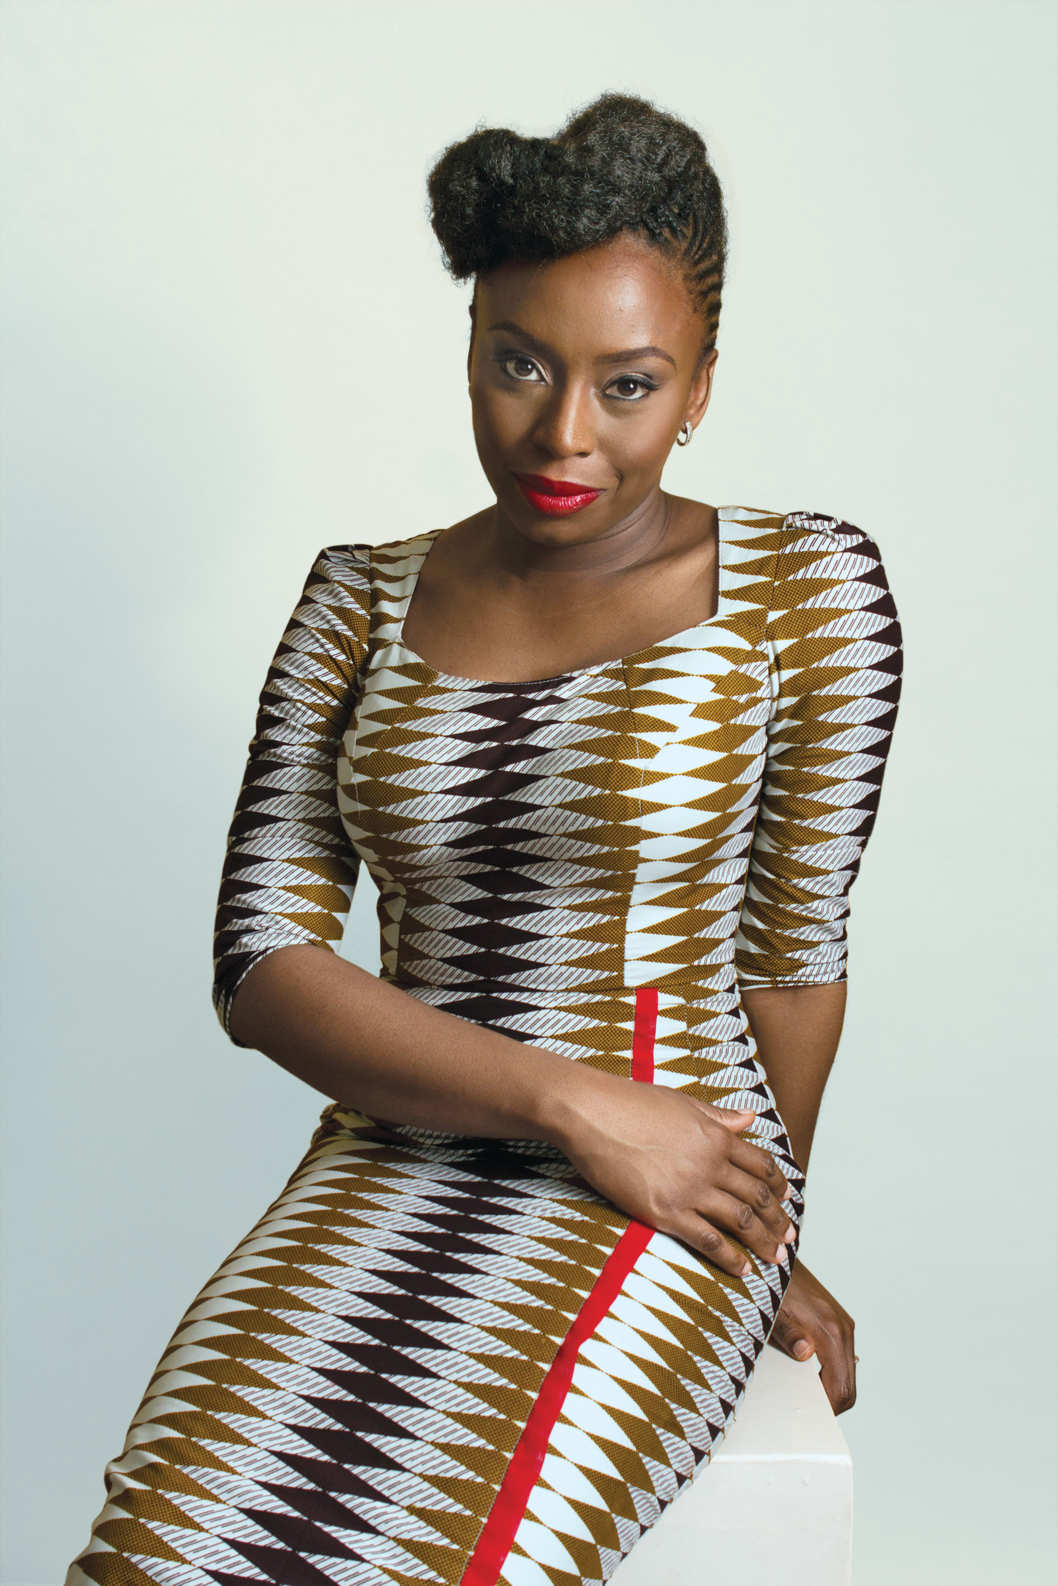 Writer Chimamanda Ngozi Adichie as featured in New York magazine